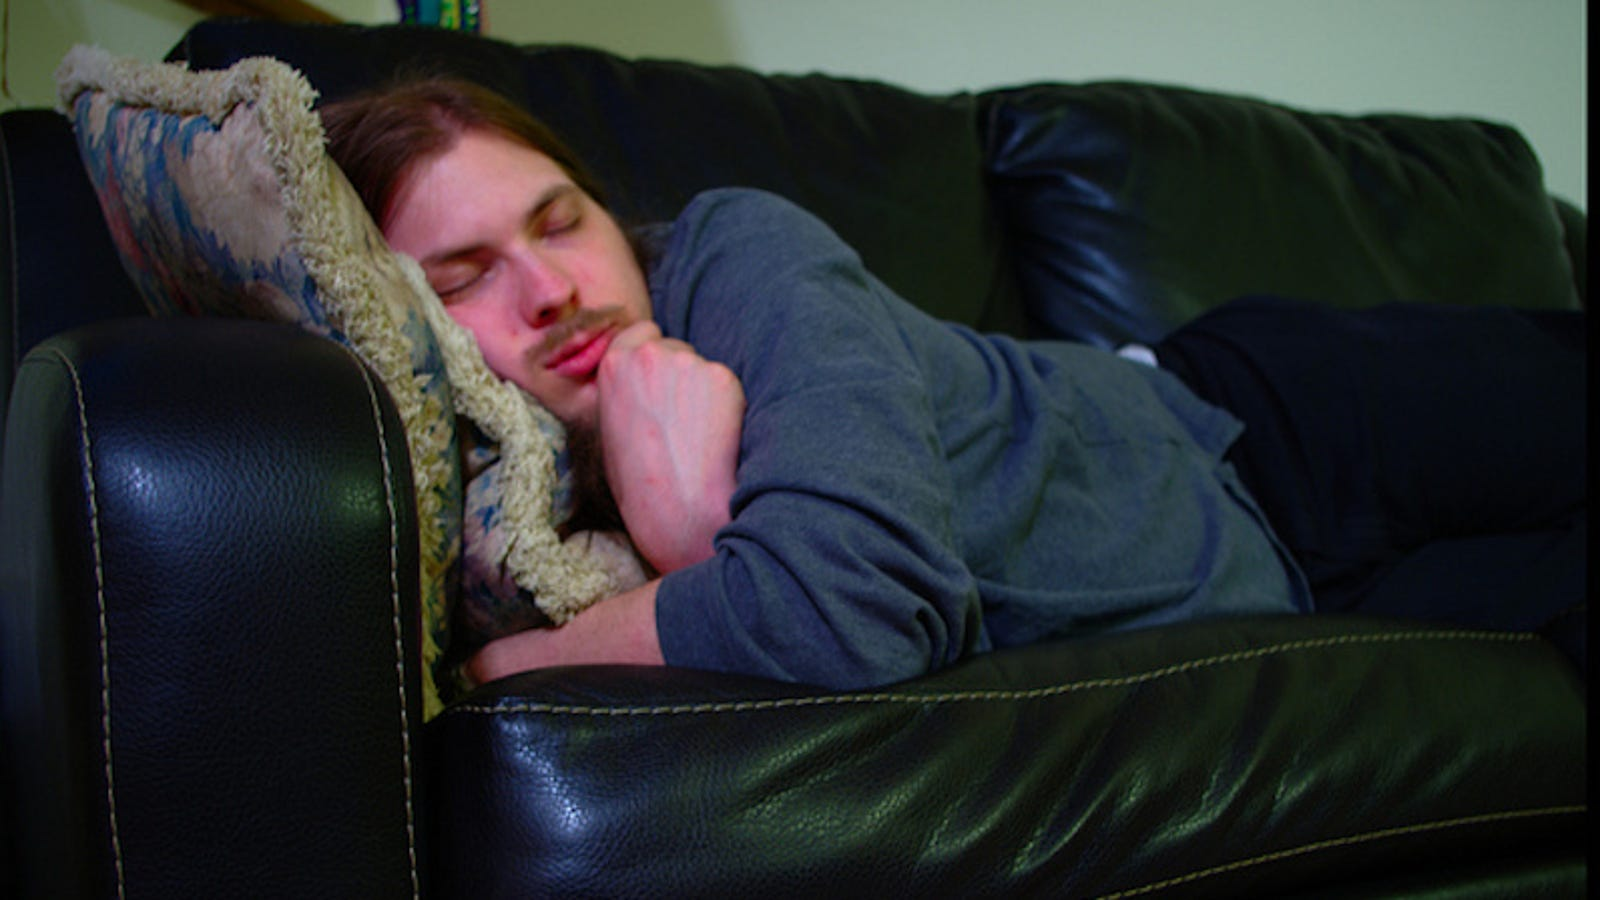 Test Sleeping Pills At Home, Where Youre Safe, Before Your Next Flight-6401